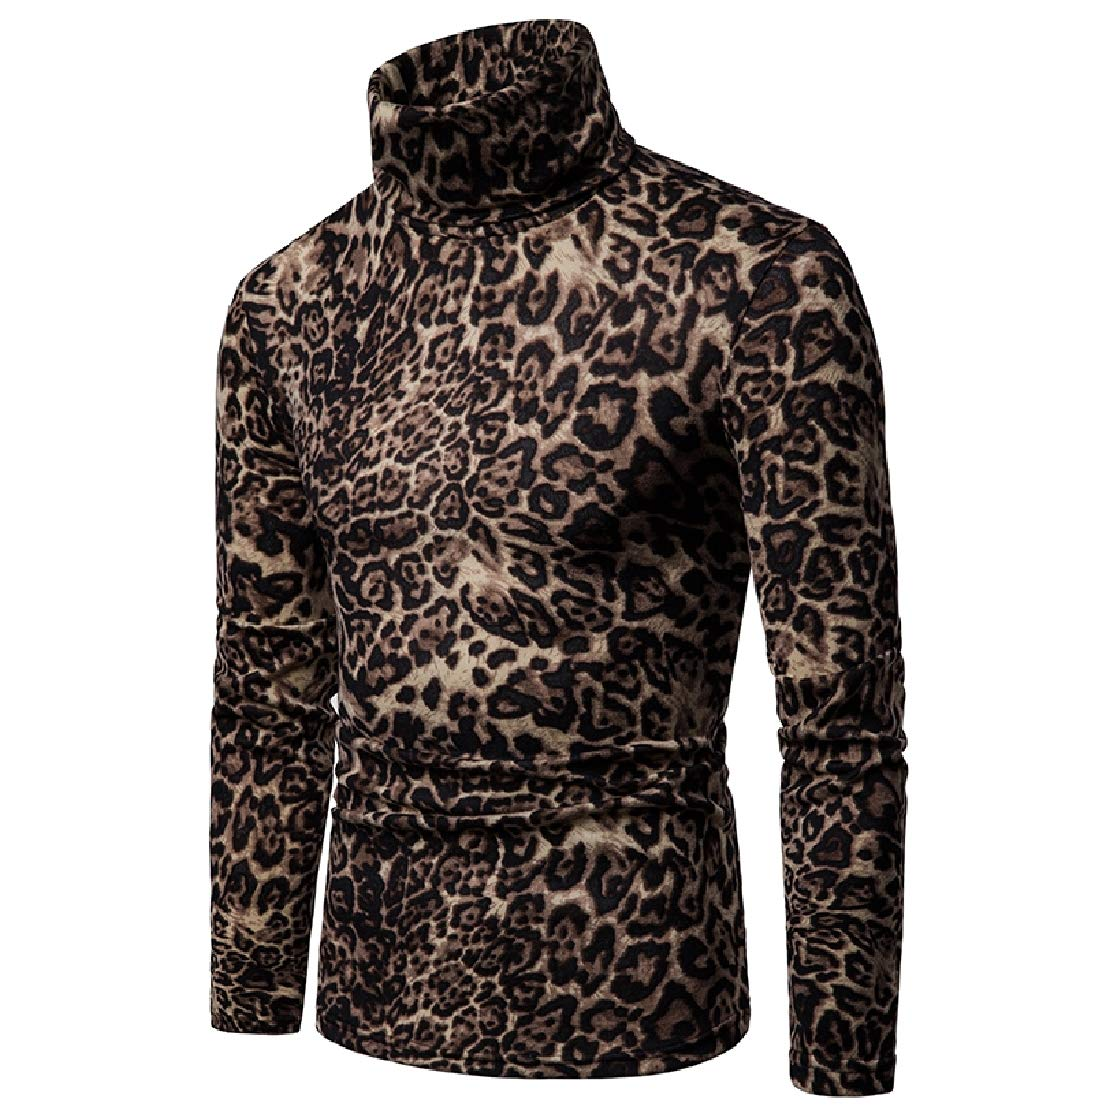 YUNY Mens Print Tops Cozy Leopard Turtle Neck Pullover Standard-fit Sweaters AS1 XL